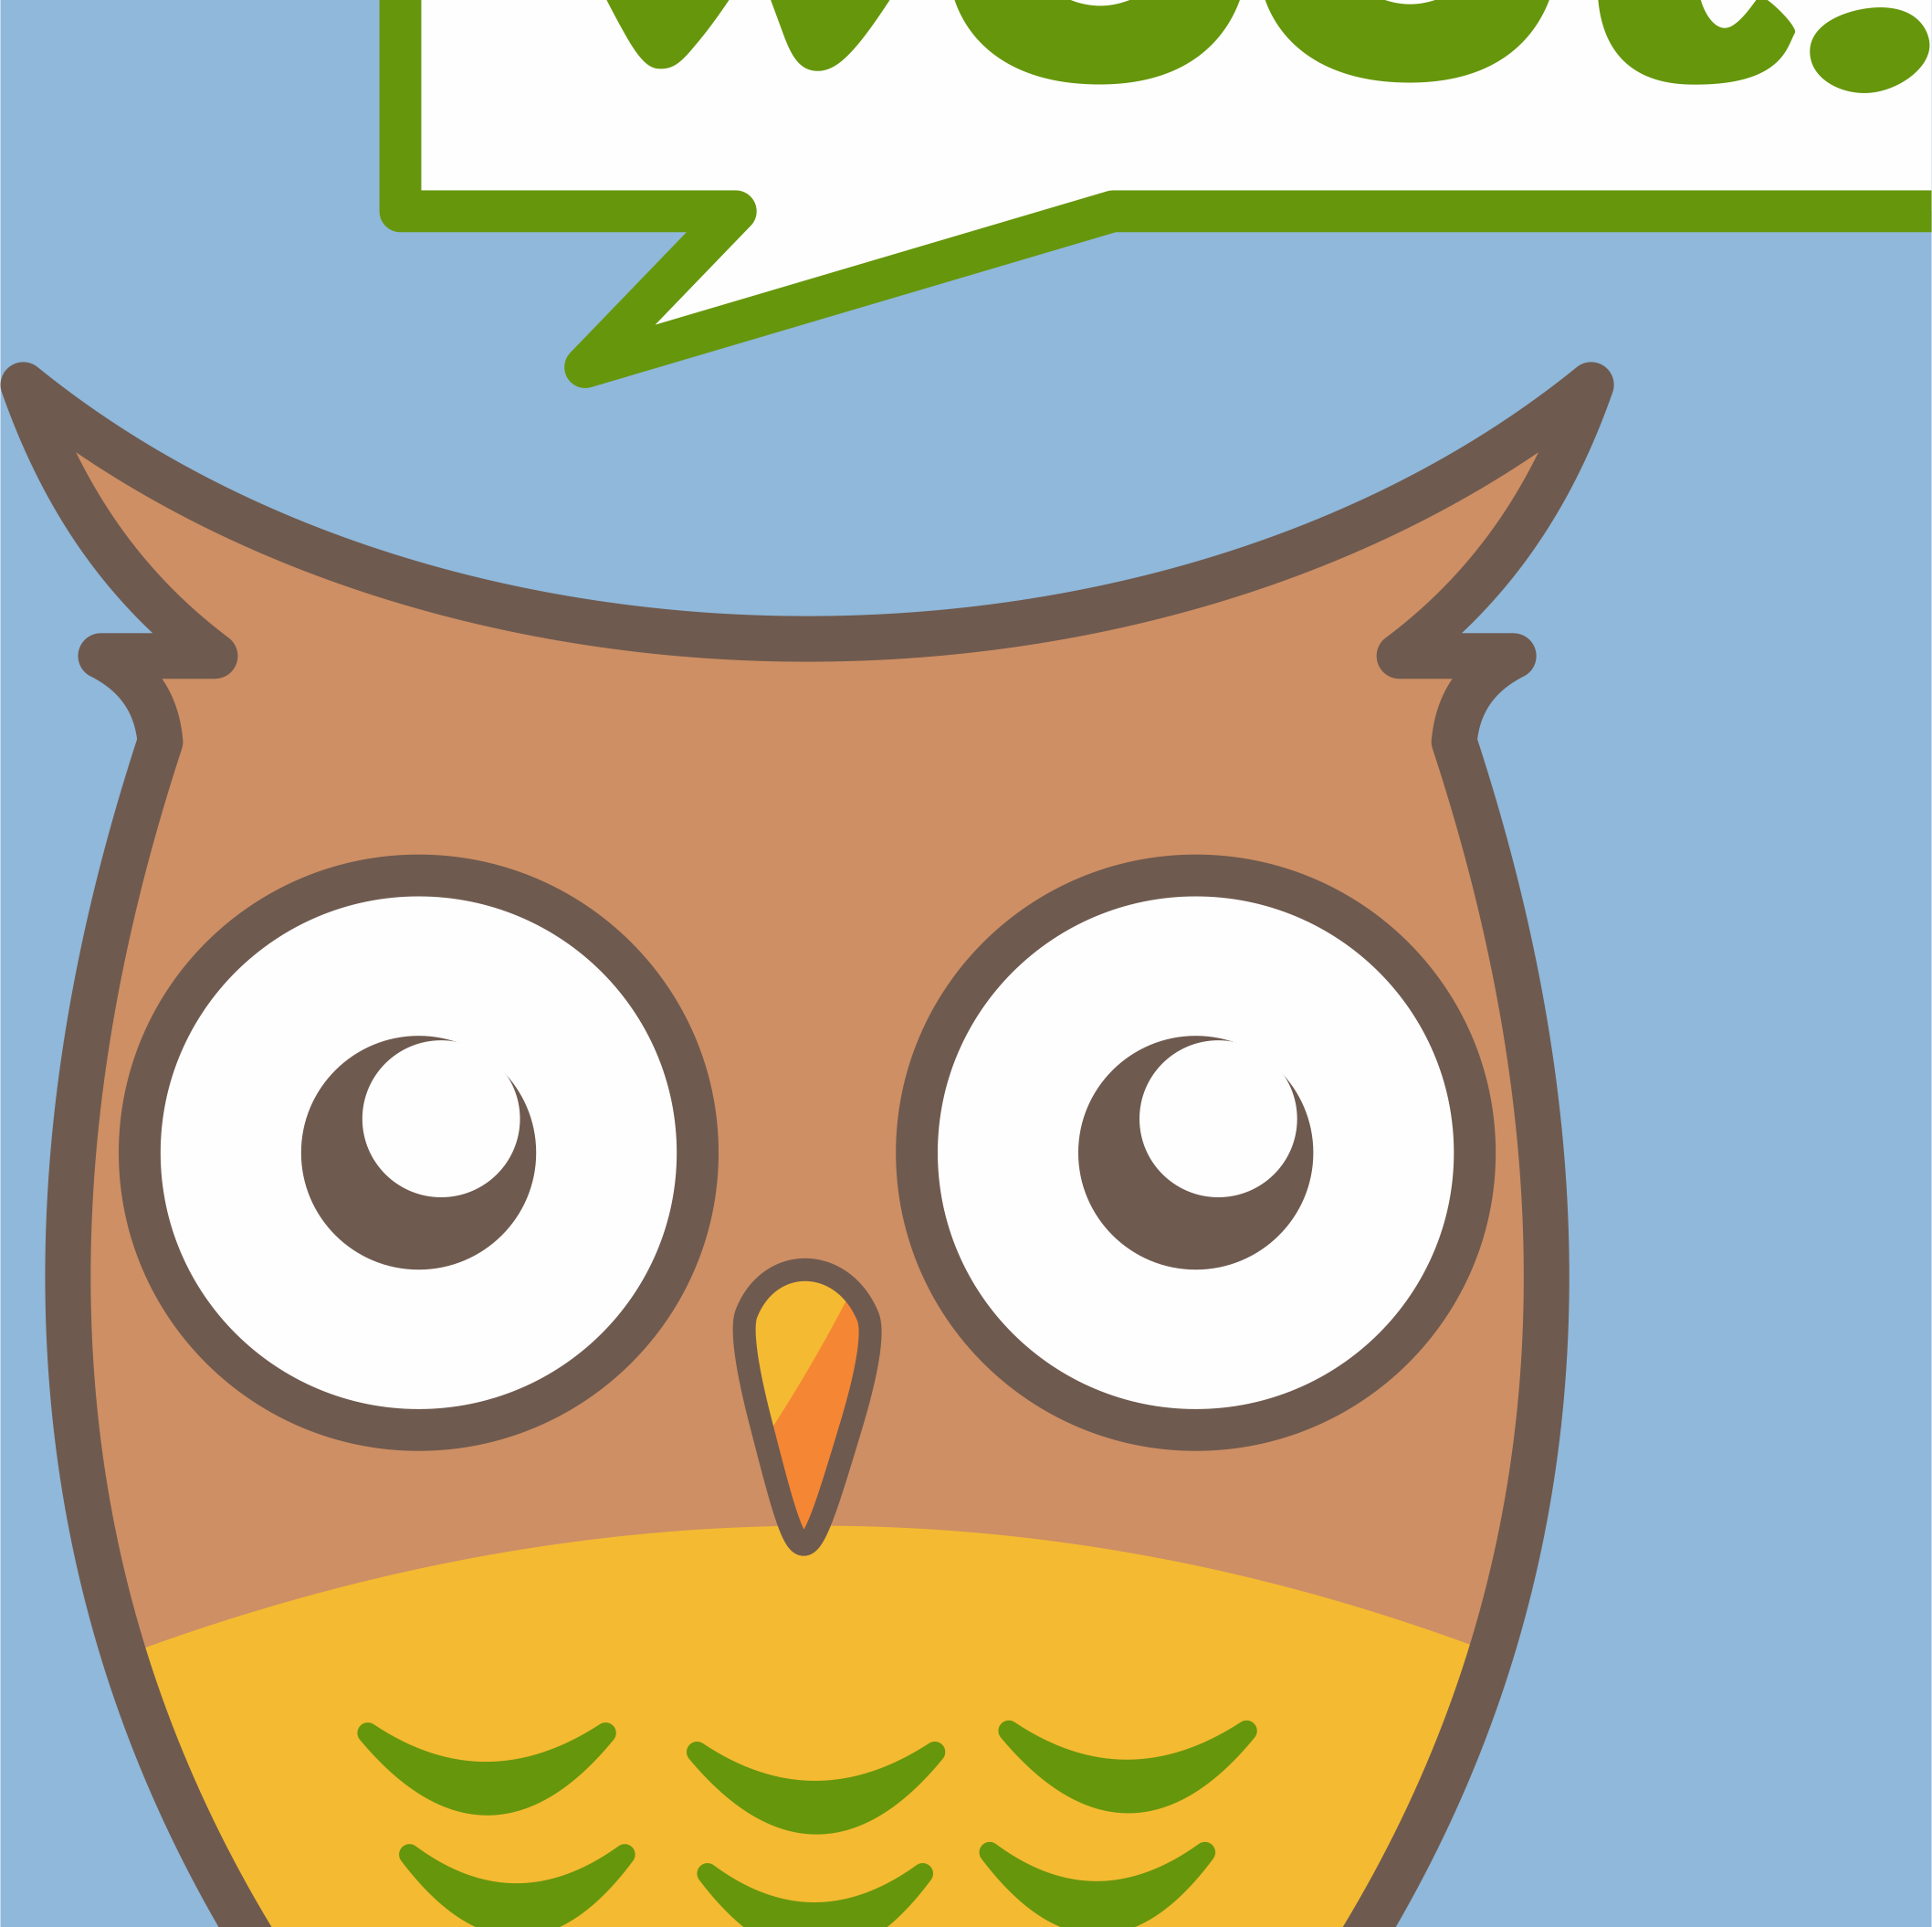 Owl goes Woot!